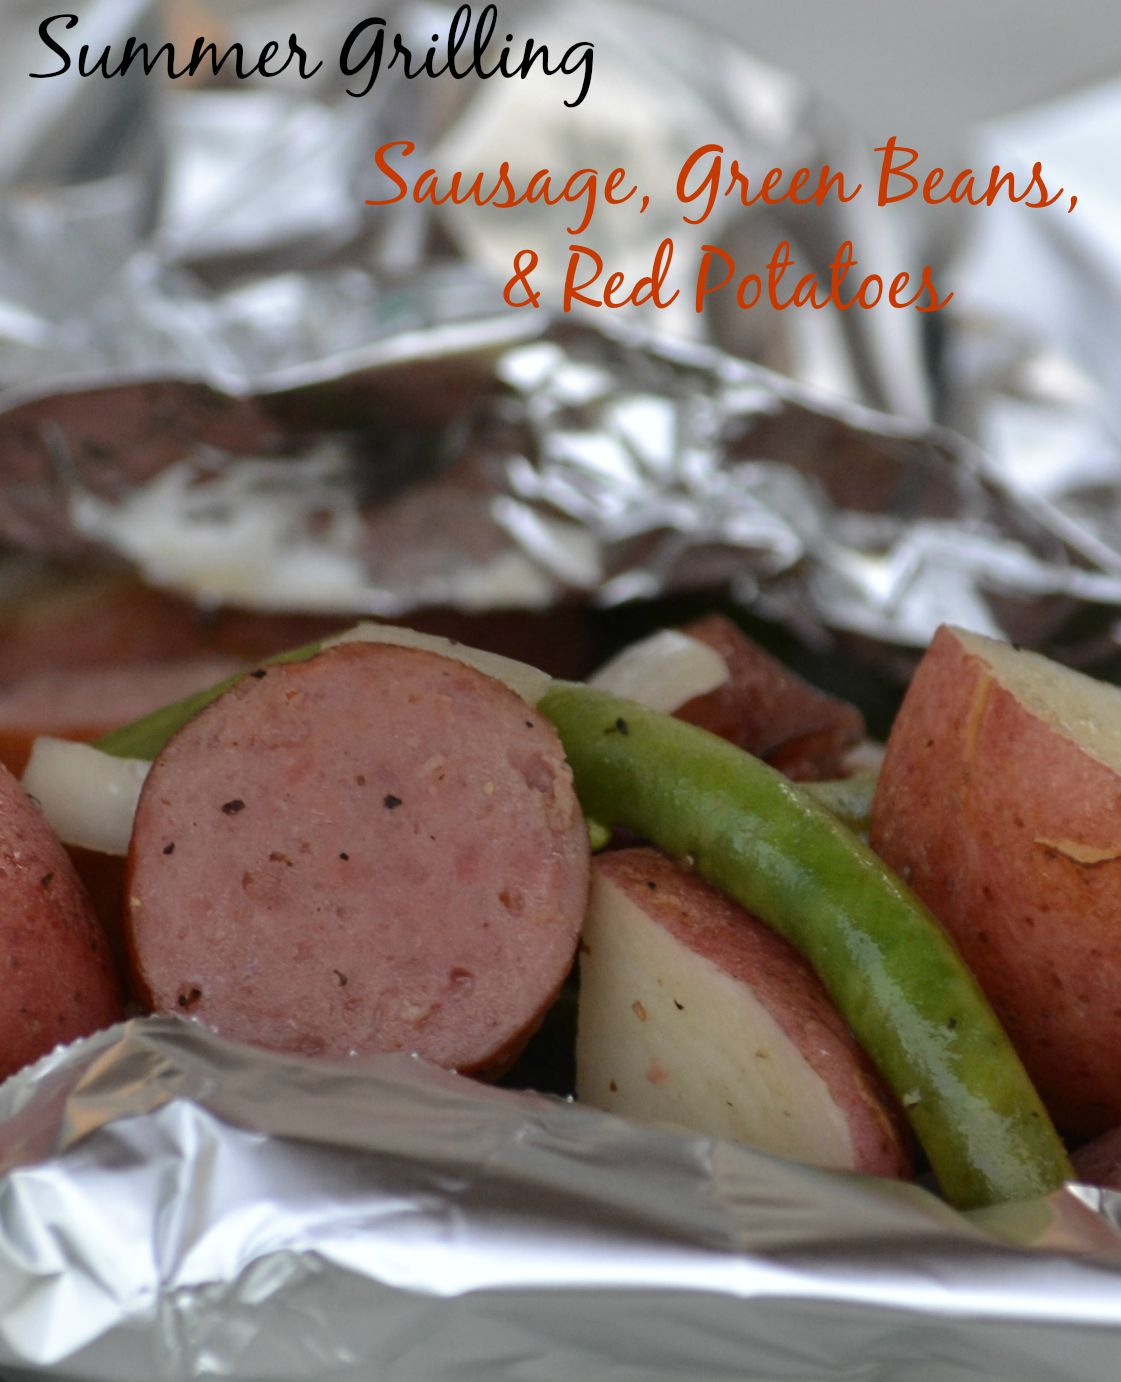 Sausage green beans red potatoes